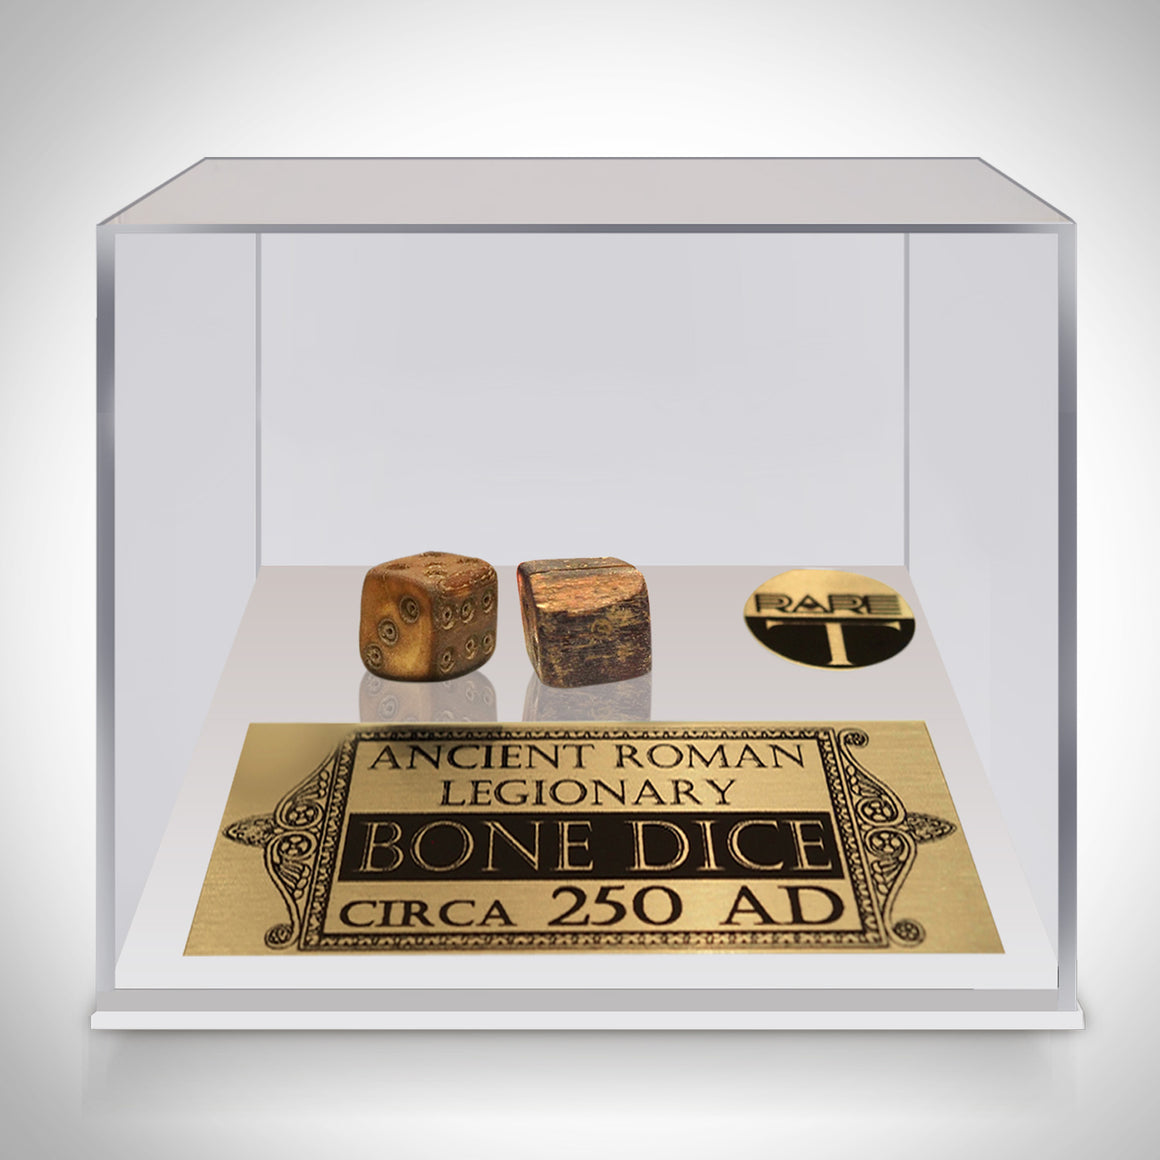 Authentic PAIR OF ANCIENT ROMAN LEGIONARY BONE DICE - CIRCA 250 AD Displayed in a Rare-T Exclusive Custom Museum Display